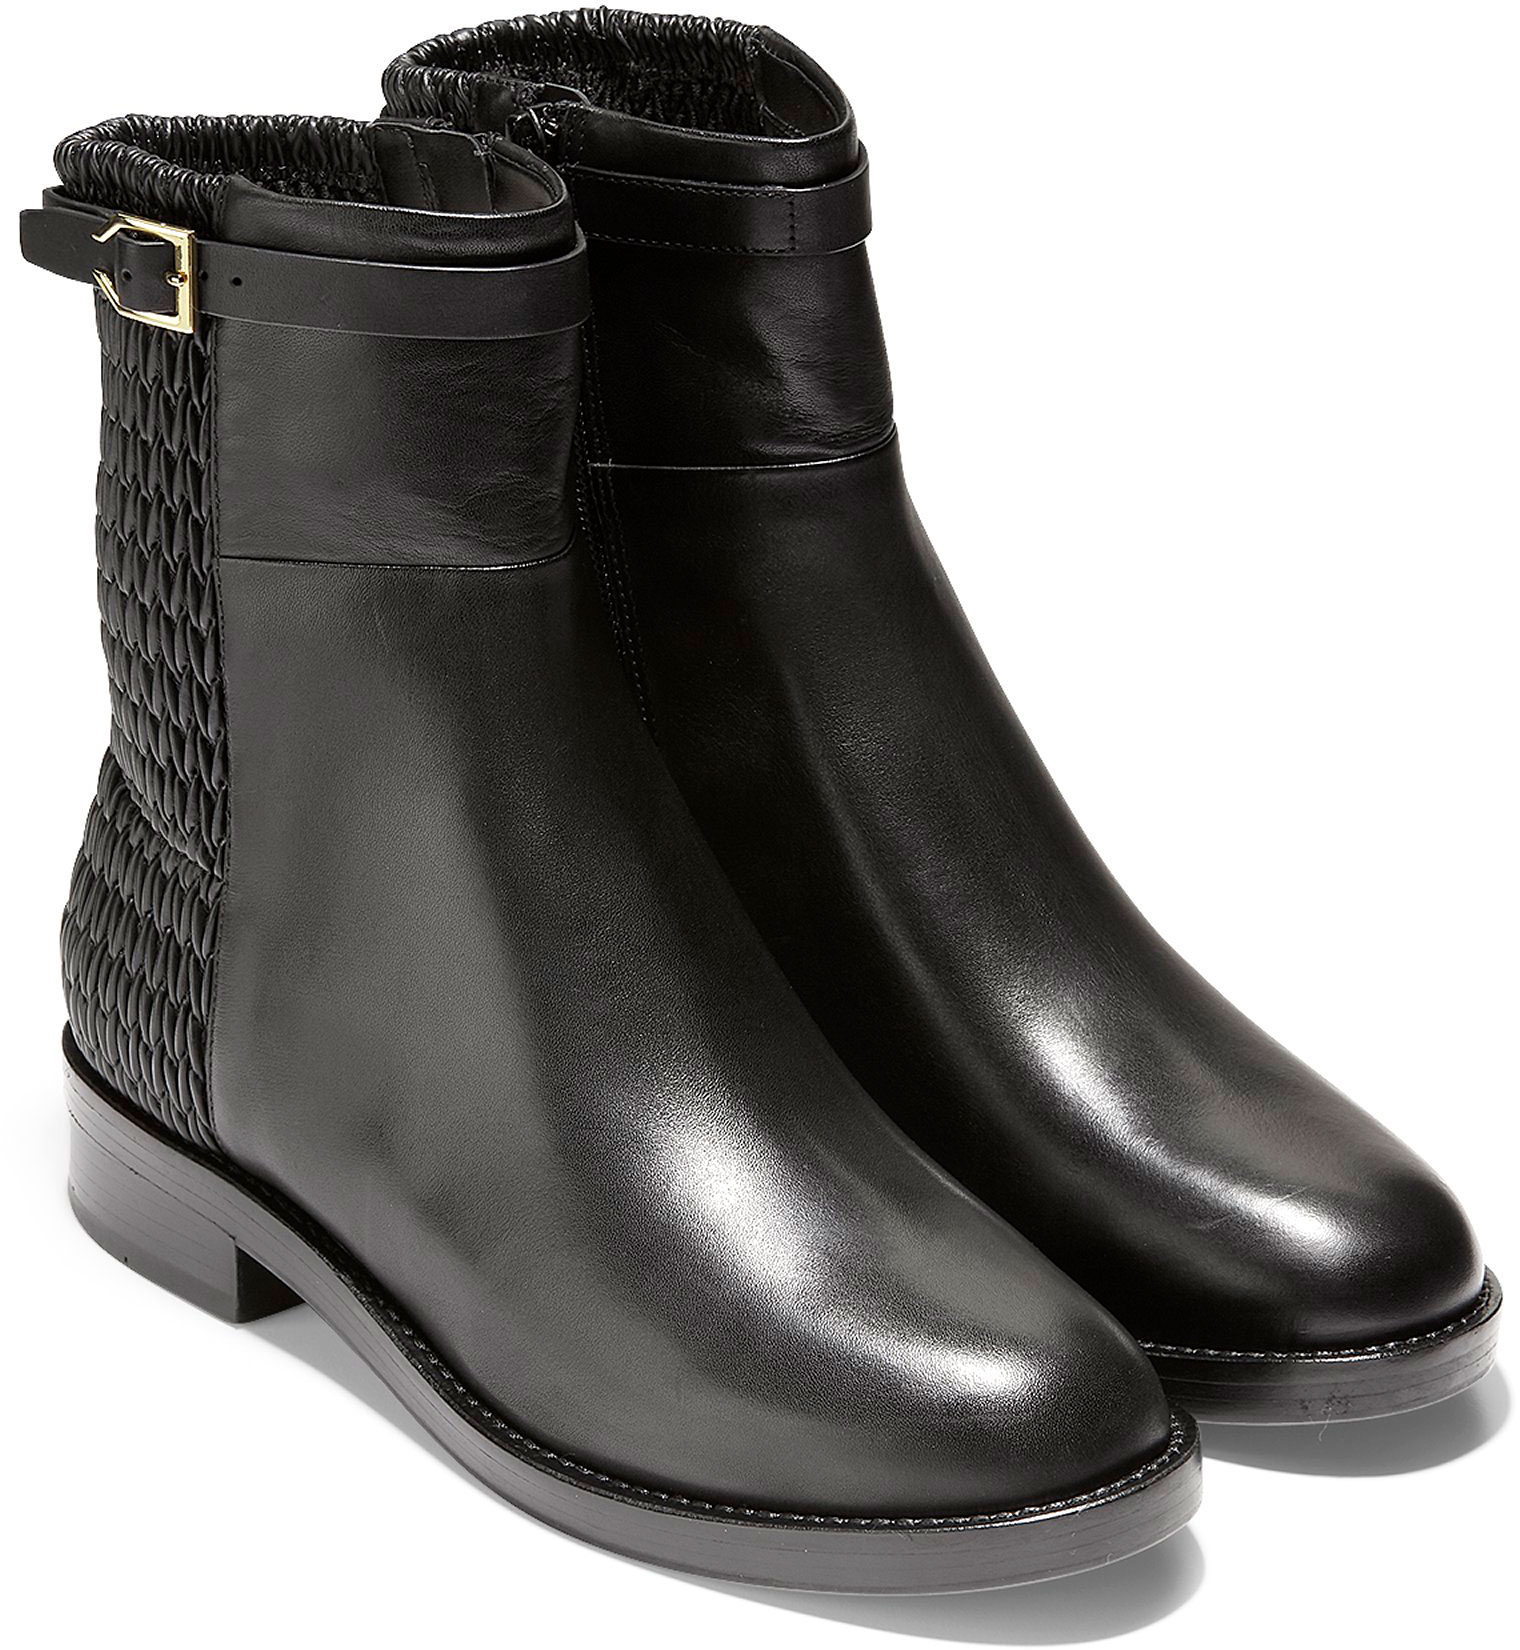 9c0b18b298d Cole Haan Women s Lexi Grand Stretch Strap Bootie W12055 Black  Leather-Weave Stretch ...